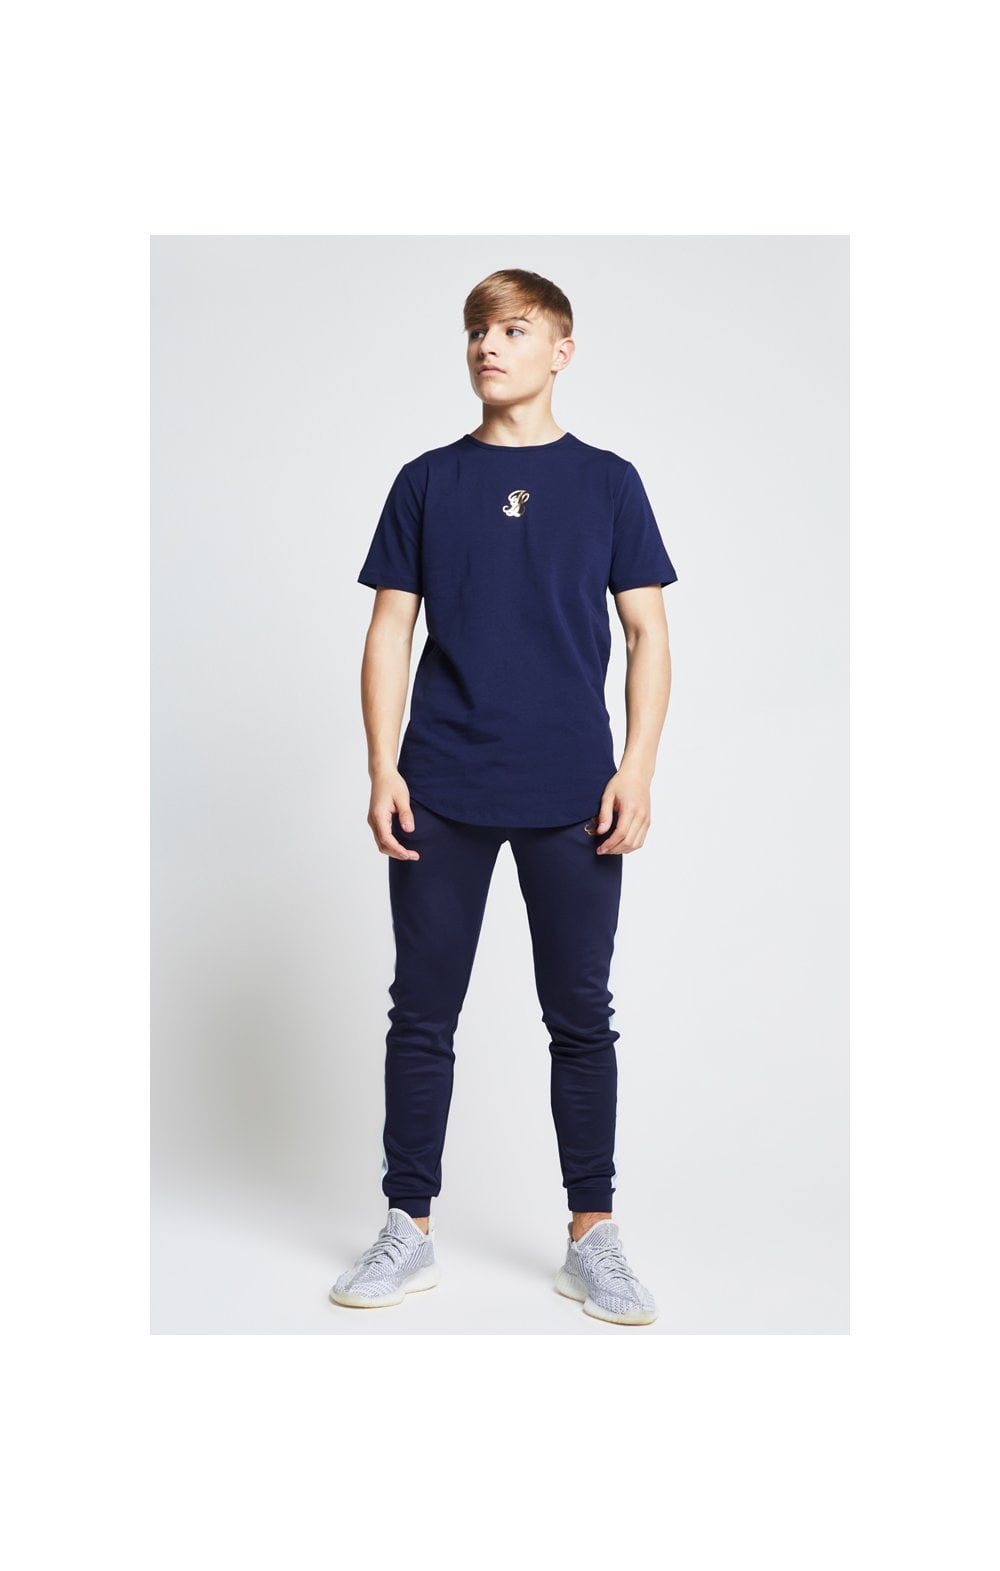 Illusive London Marble Racer Back Tee – Navy & Marble (3)